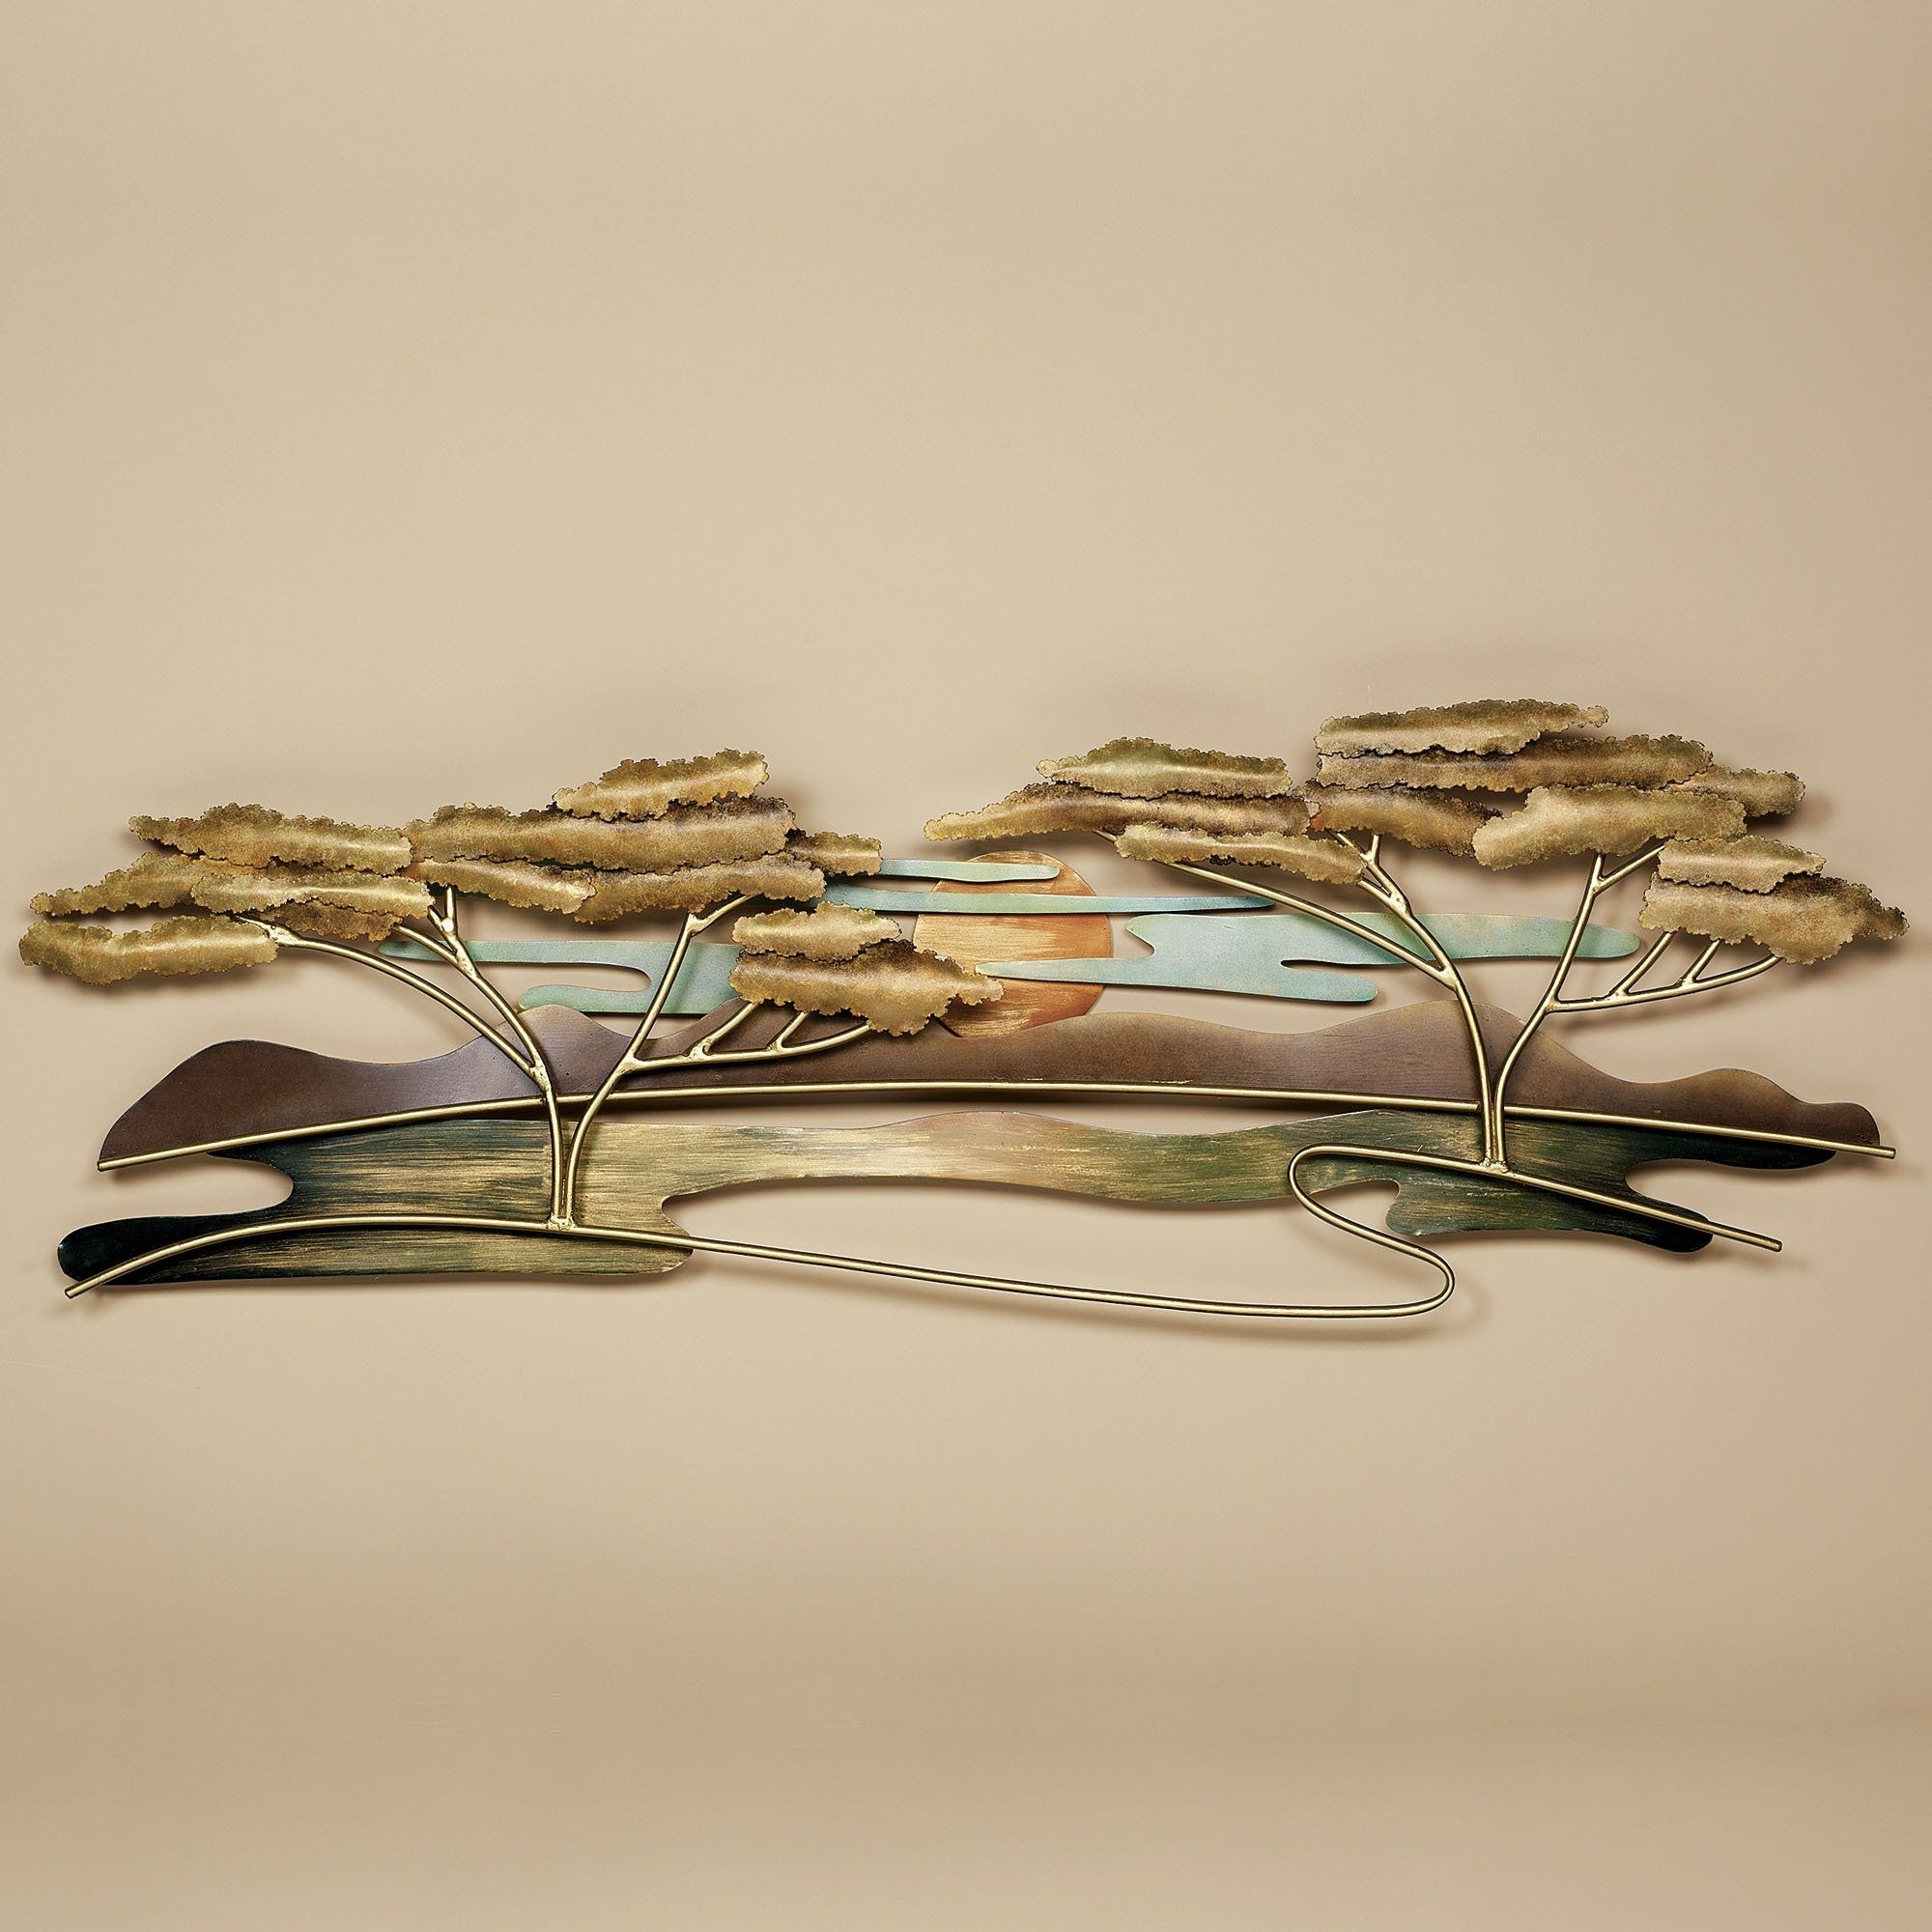 Wall Sculptures, Metal Wall In Best And Newest Touch Of Class Wall Art (View 14 of 15)